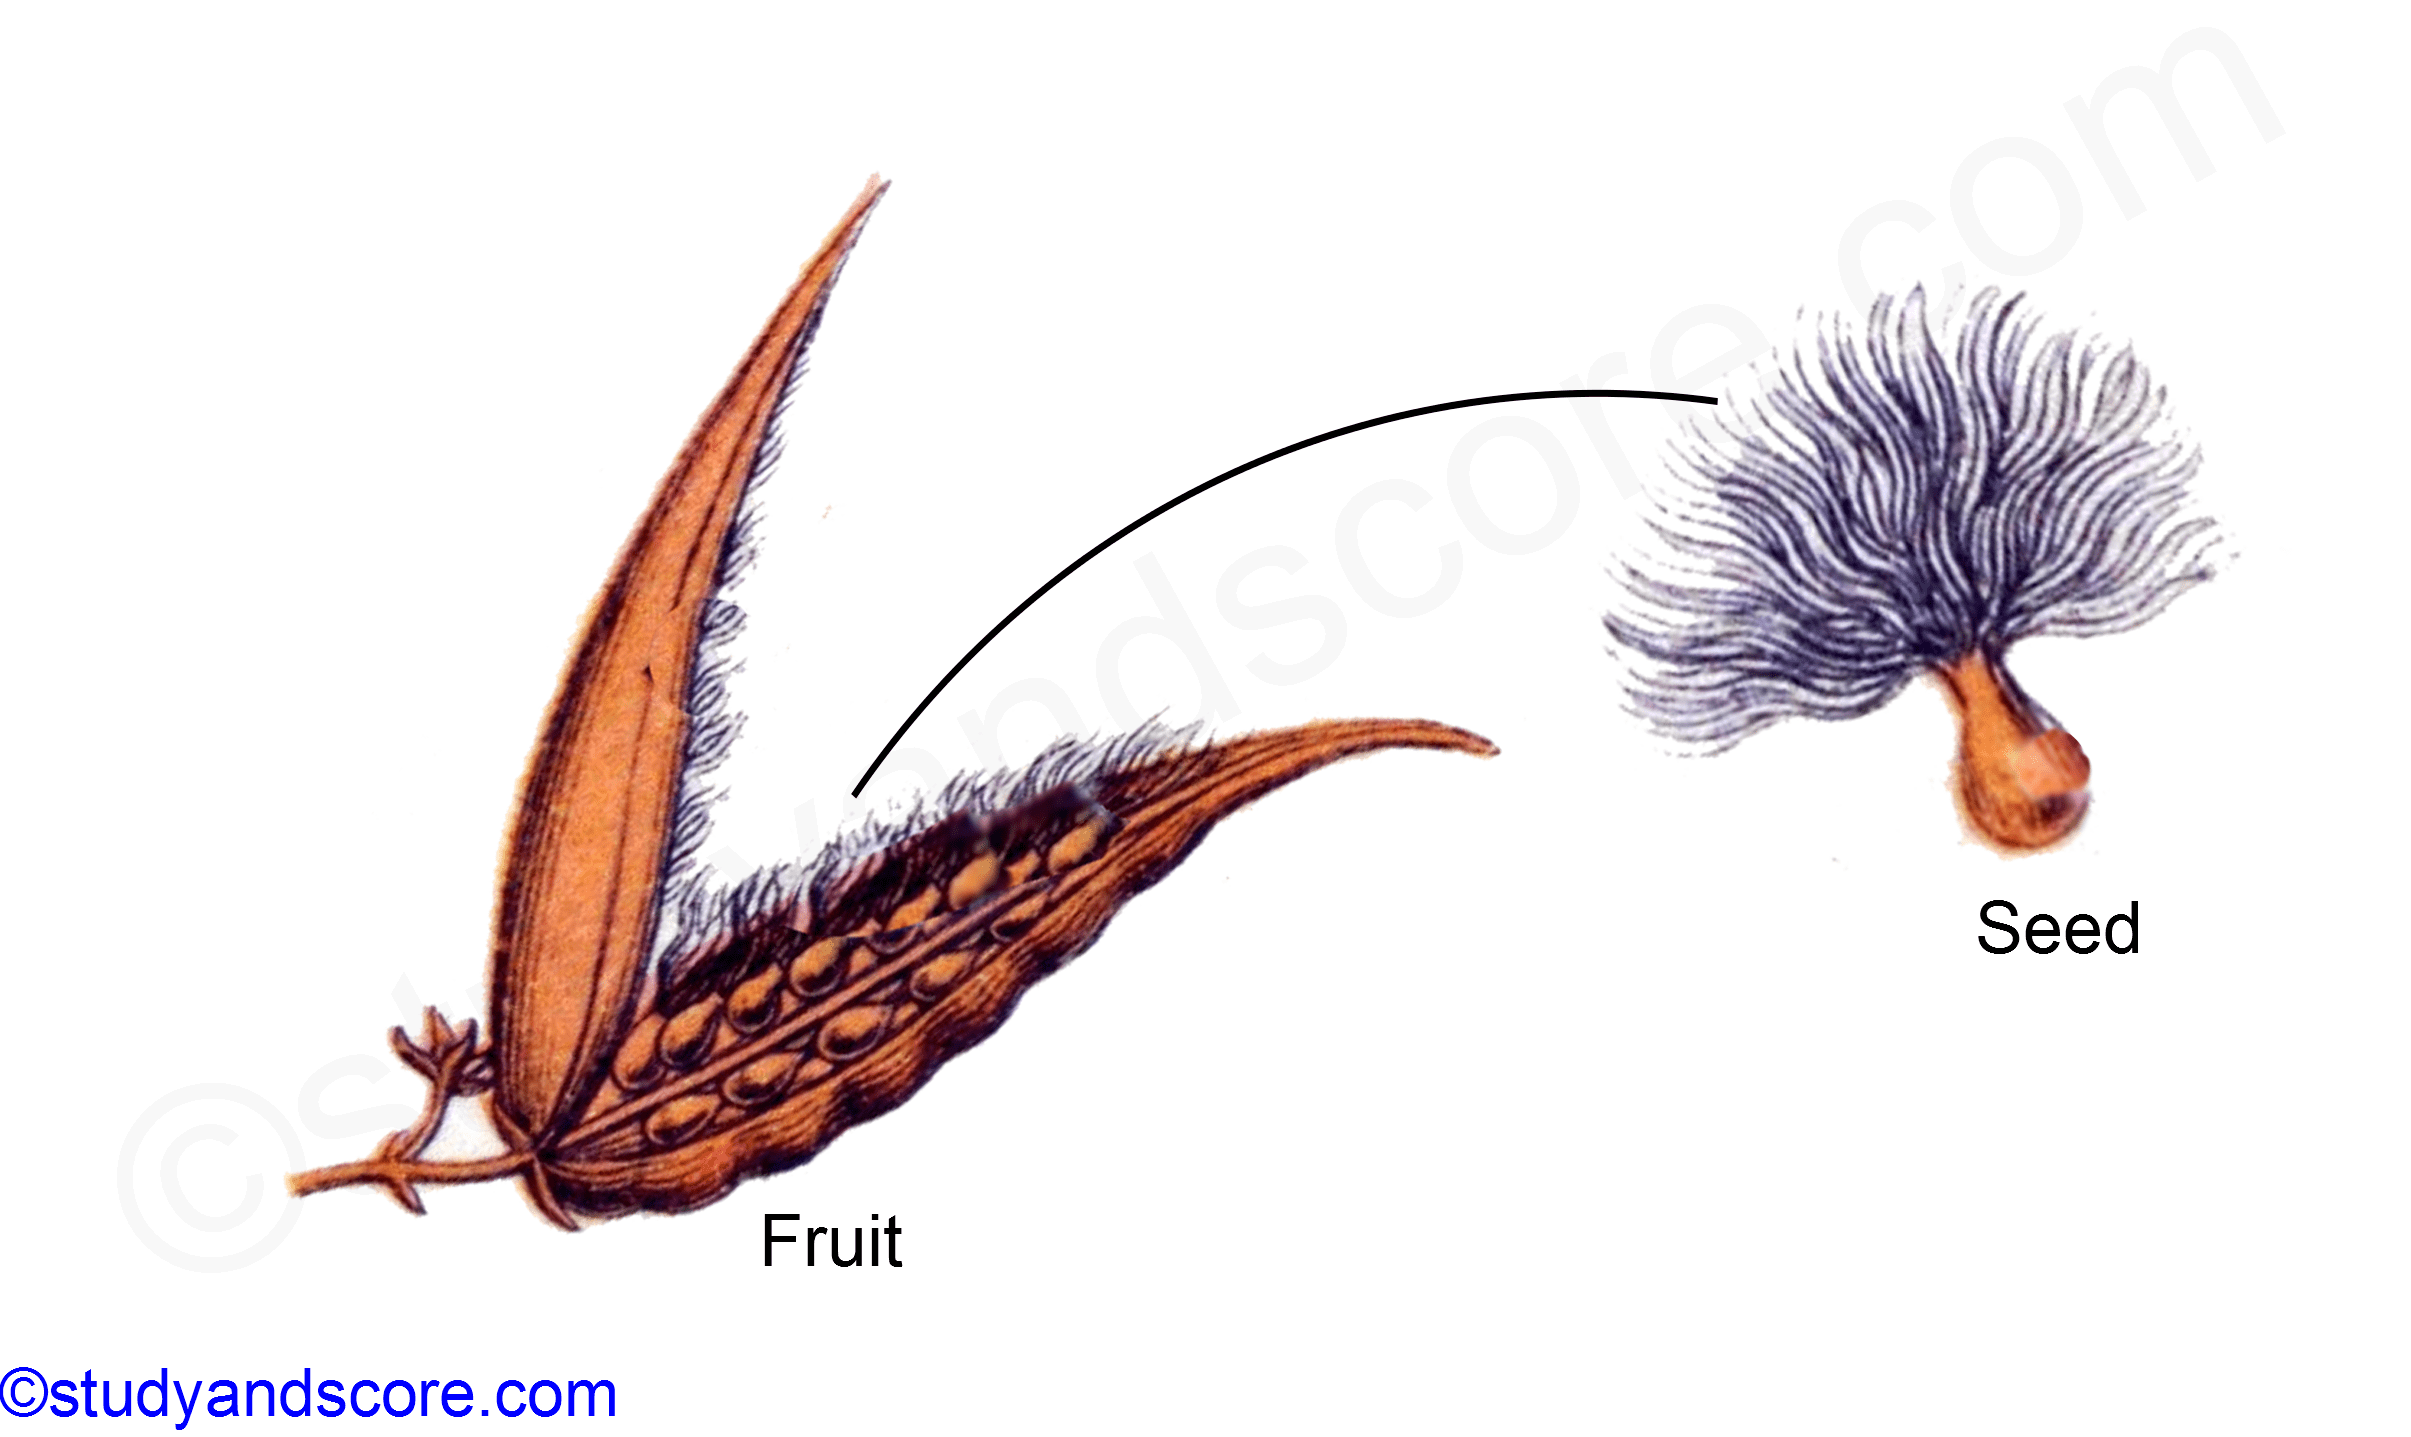 asclepiadaceae, fruit and seed of ascleppias, asclepias